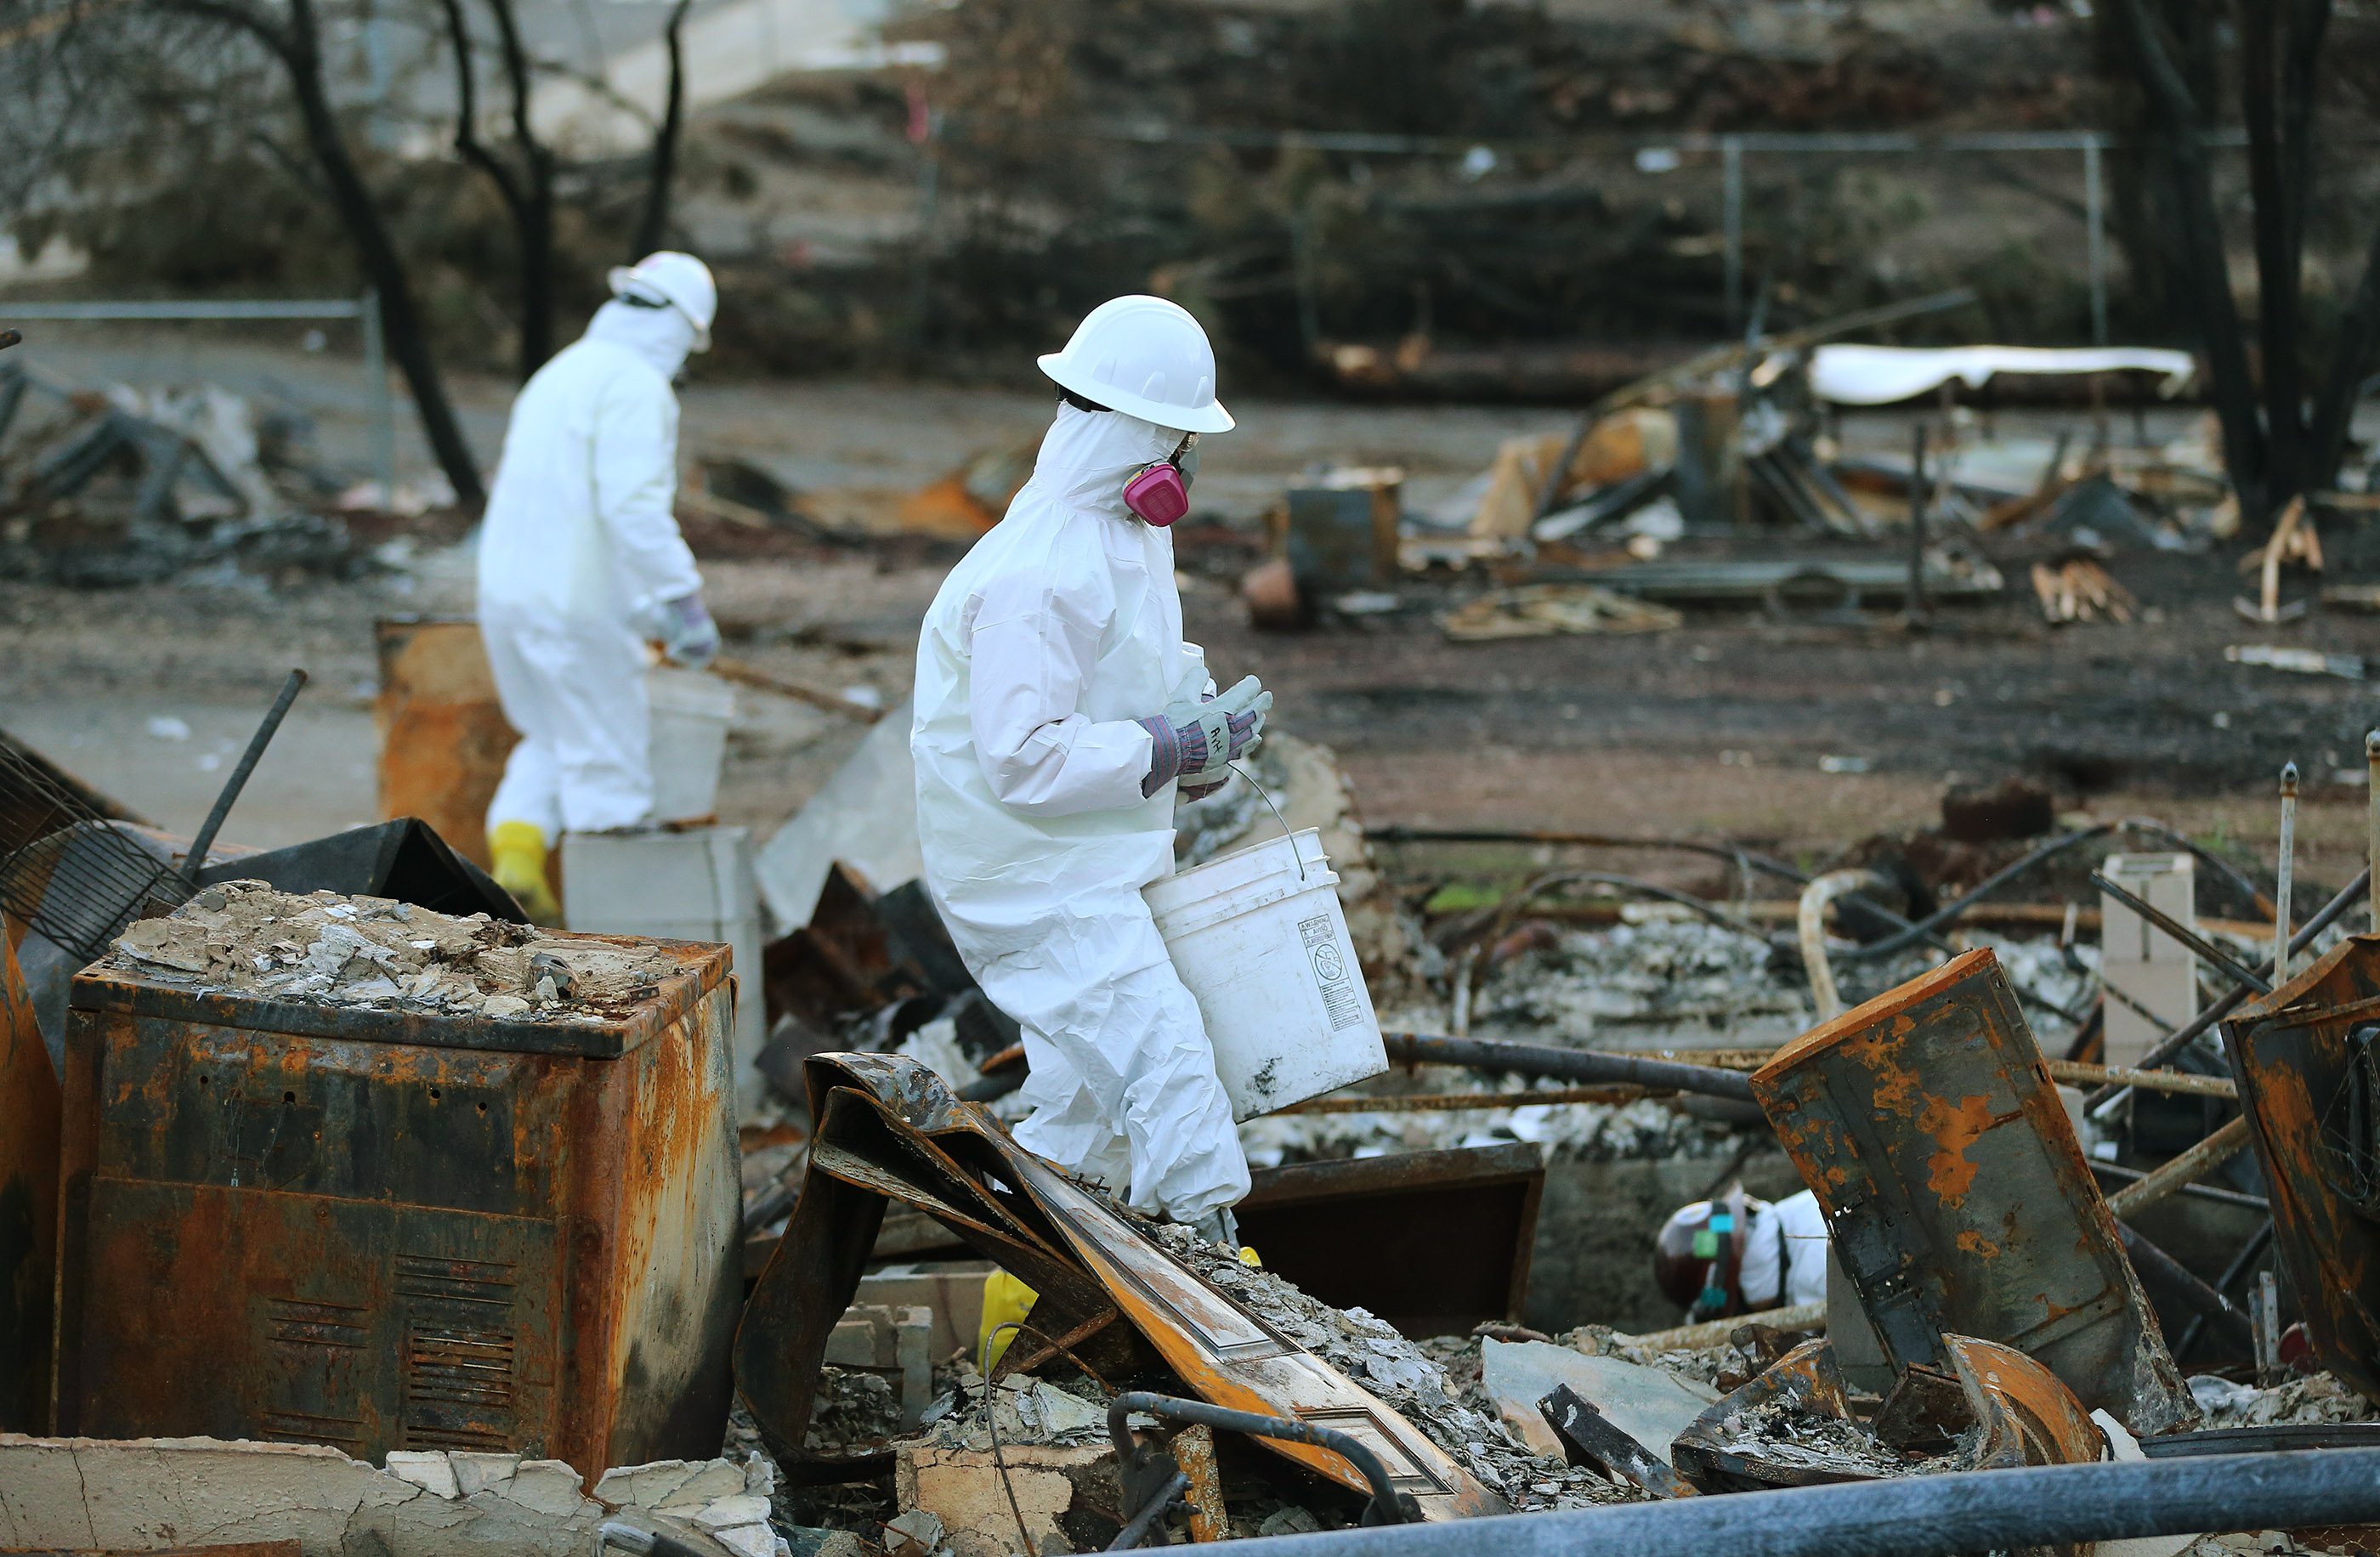 Hazardous materials are marked in Paradise, California, on Saturday, Jan. 12, 2019, two months after the Camp Fire destroyed more than 18,000 homes and businesses.